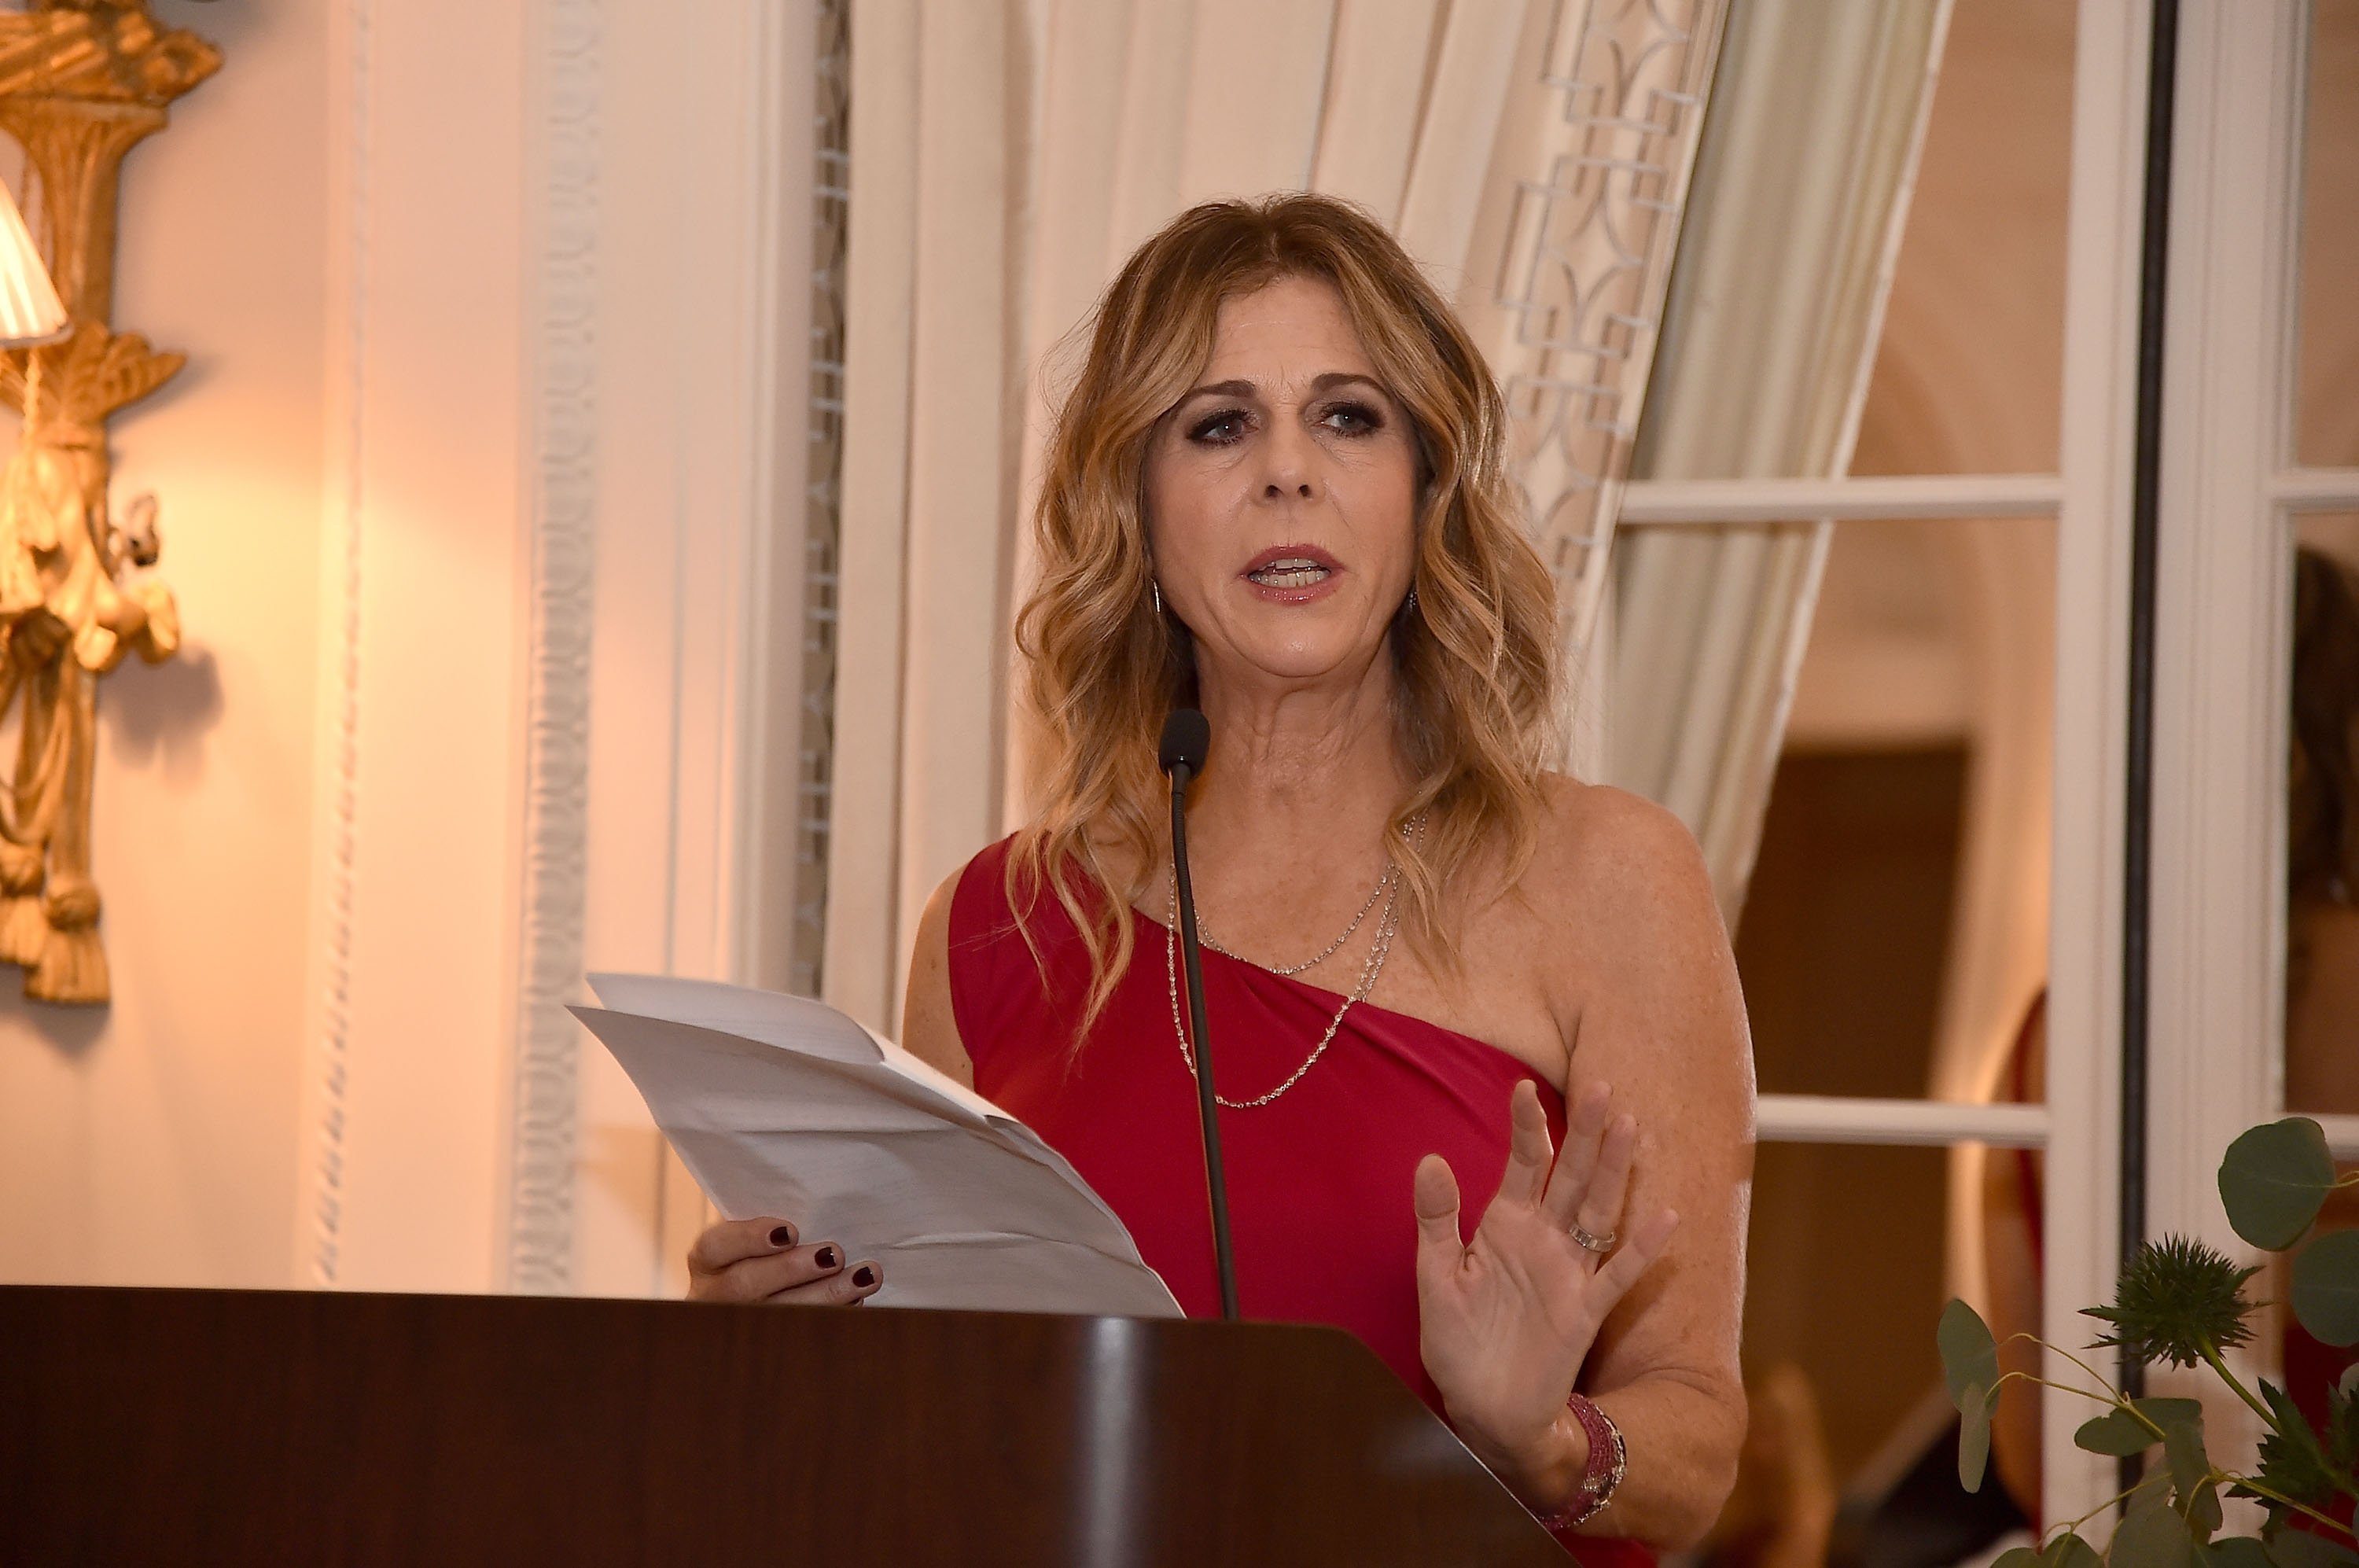 Image Credits: Getty Images / Theo Wargo | Rita Wilson speaks at the 2018 American Friends of Blerancourt Dinner on November 9, 2018 in New York City.